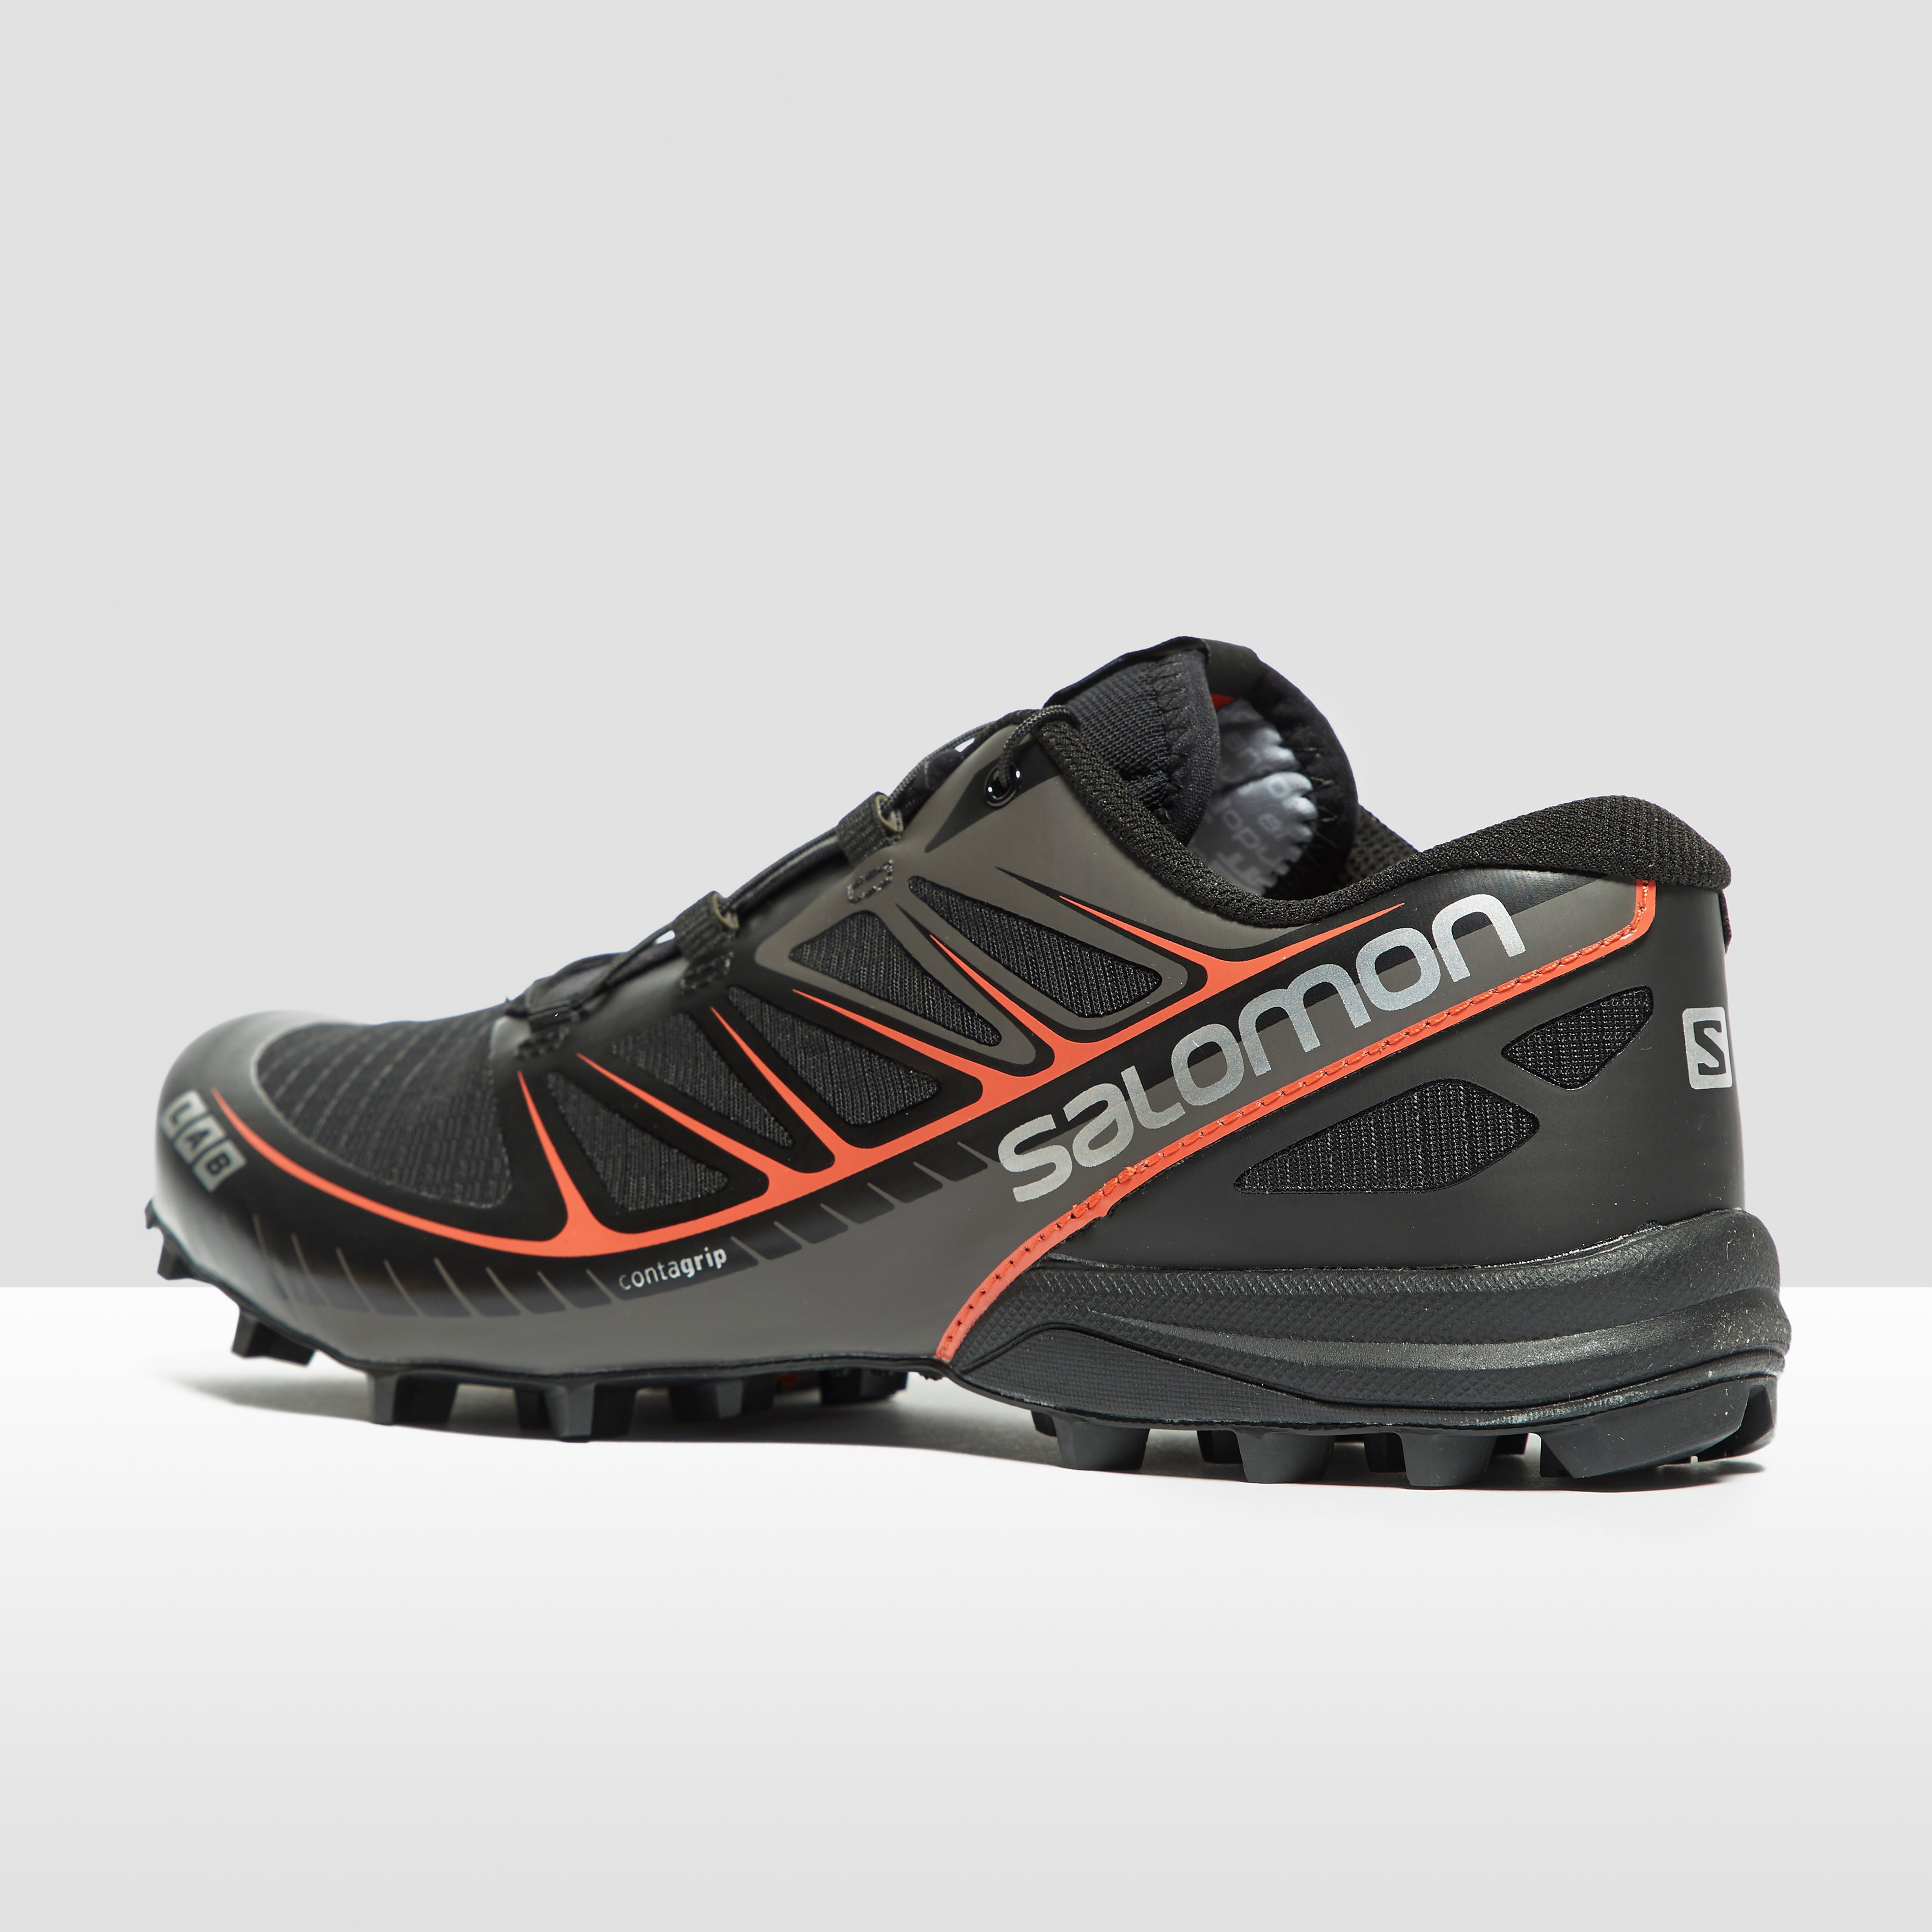 Salomon S-Lab Speed Men's Trail Running Shoes